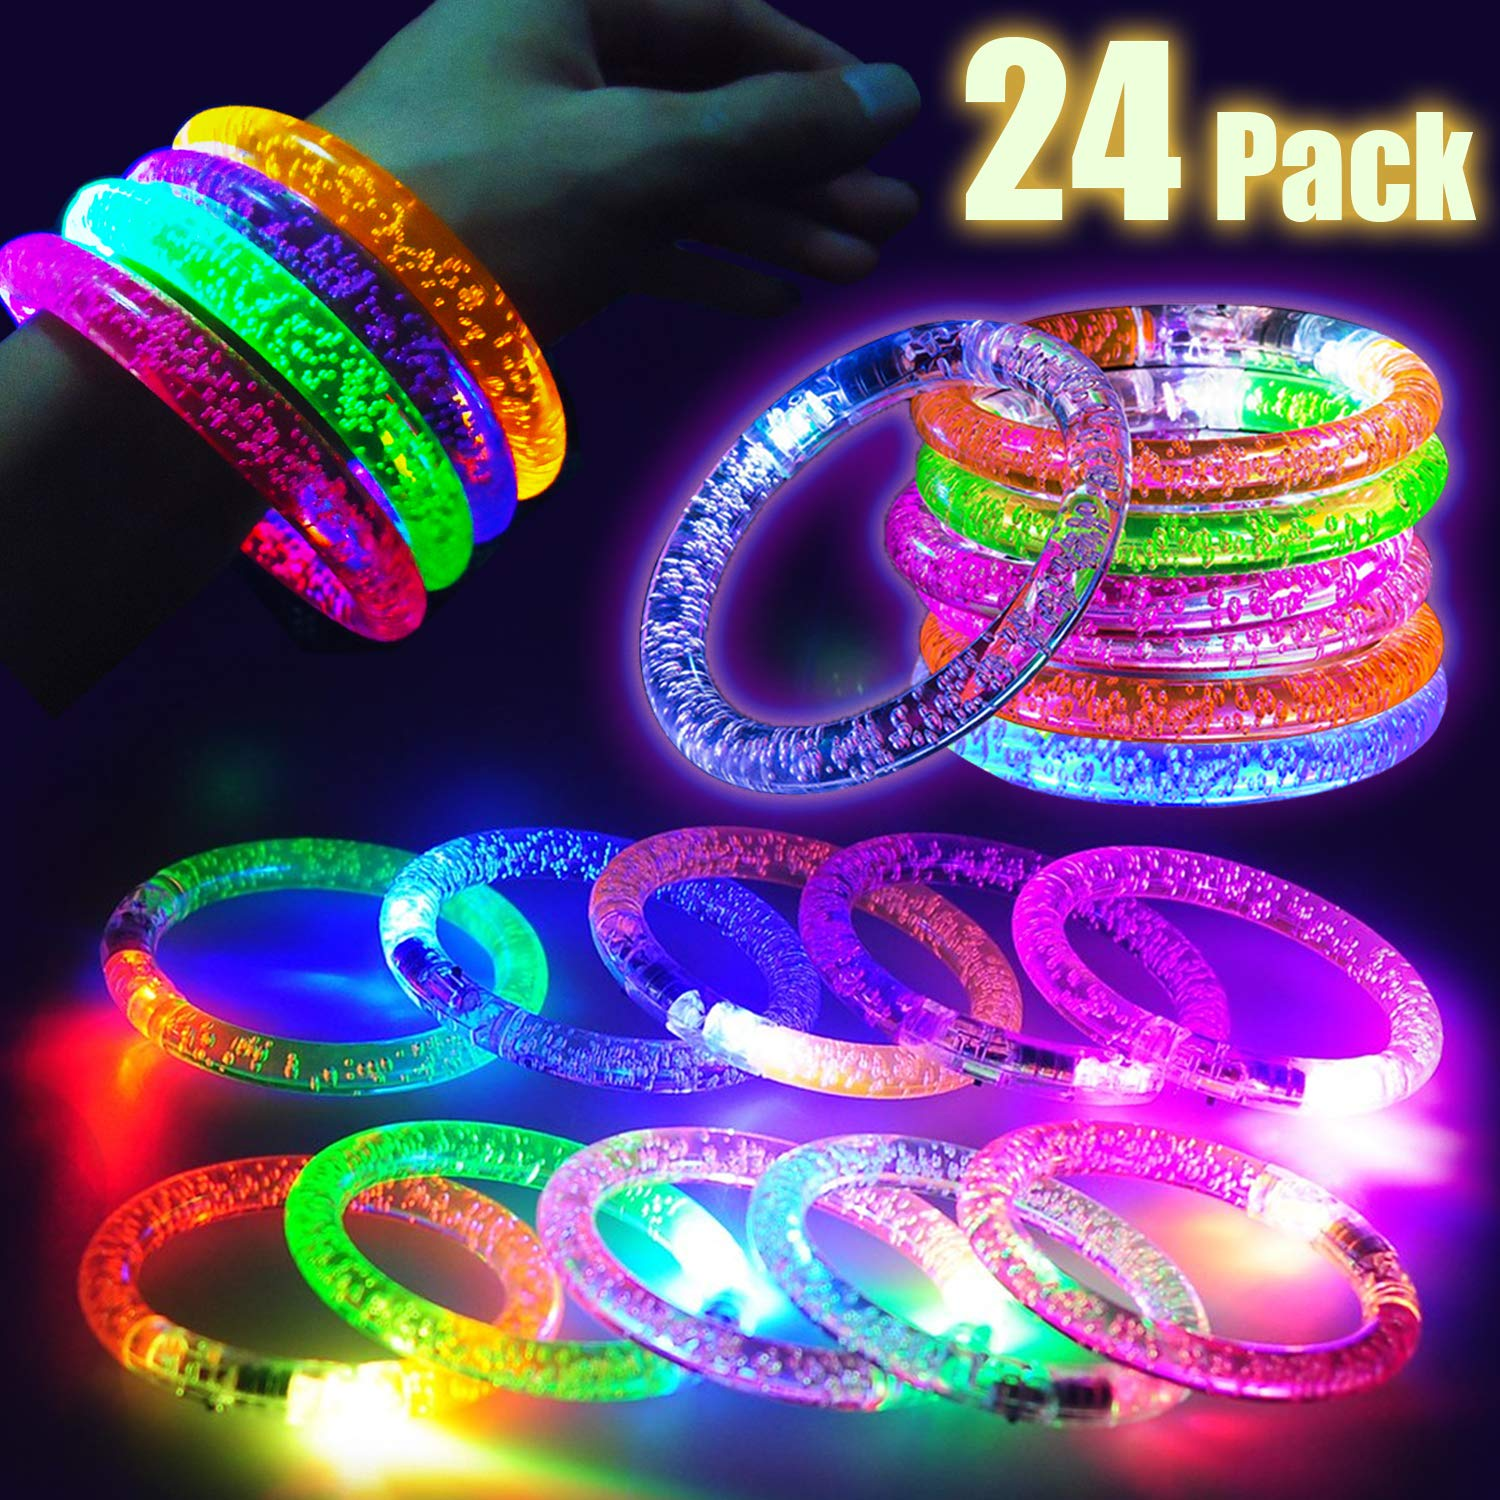 24 Pcs Flashing LED Bracelets Light Up Toys Glow Bracelet Glow in the Dark Party Supplies Fluorescence Bracelet for Neon Party, Concert Wedding,Birthday,Night Game Fun Events for Women Men Teen Kid